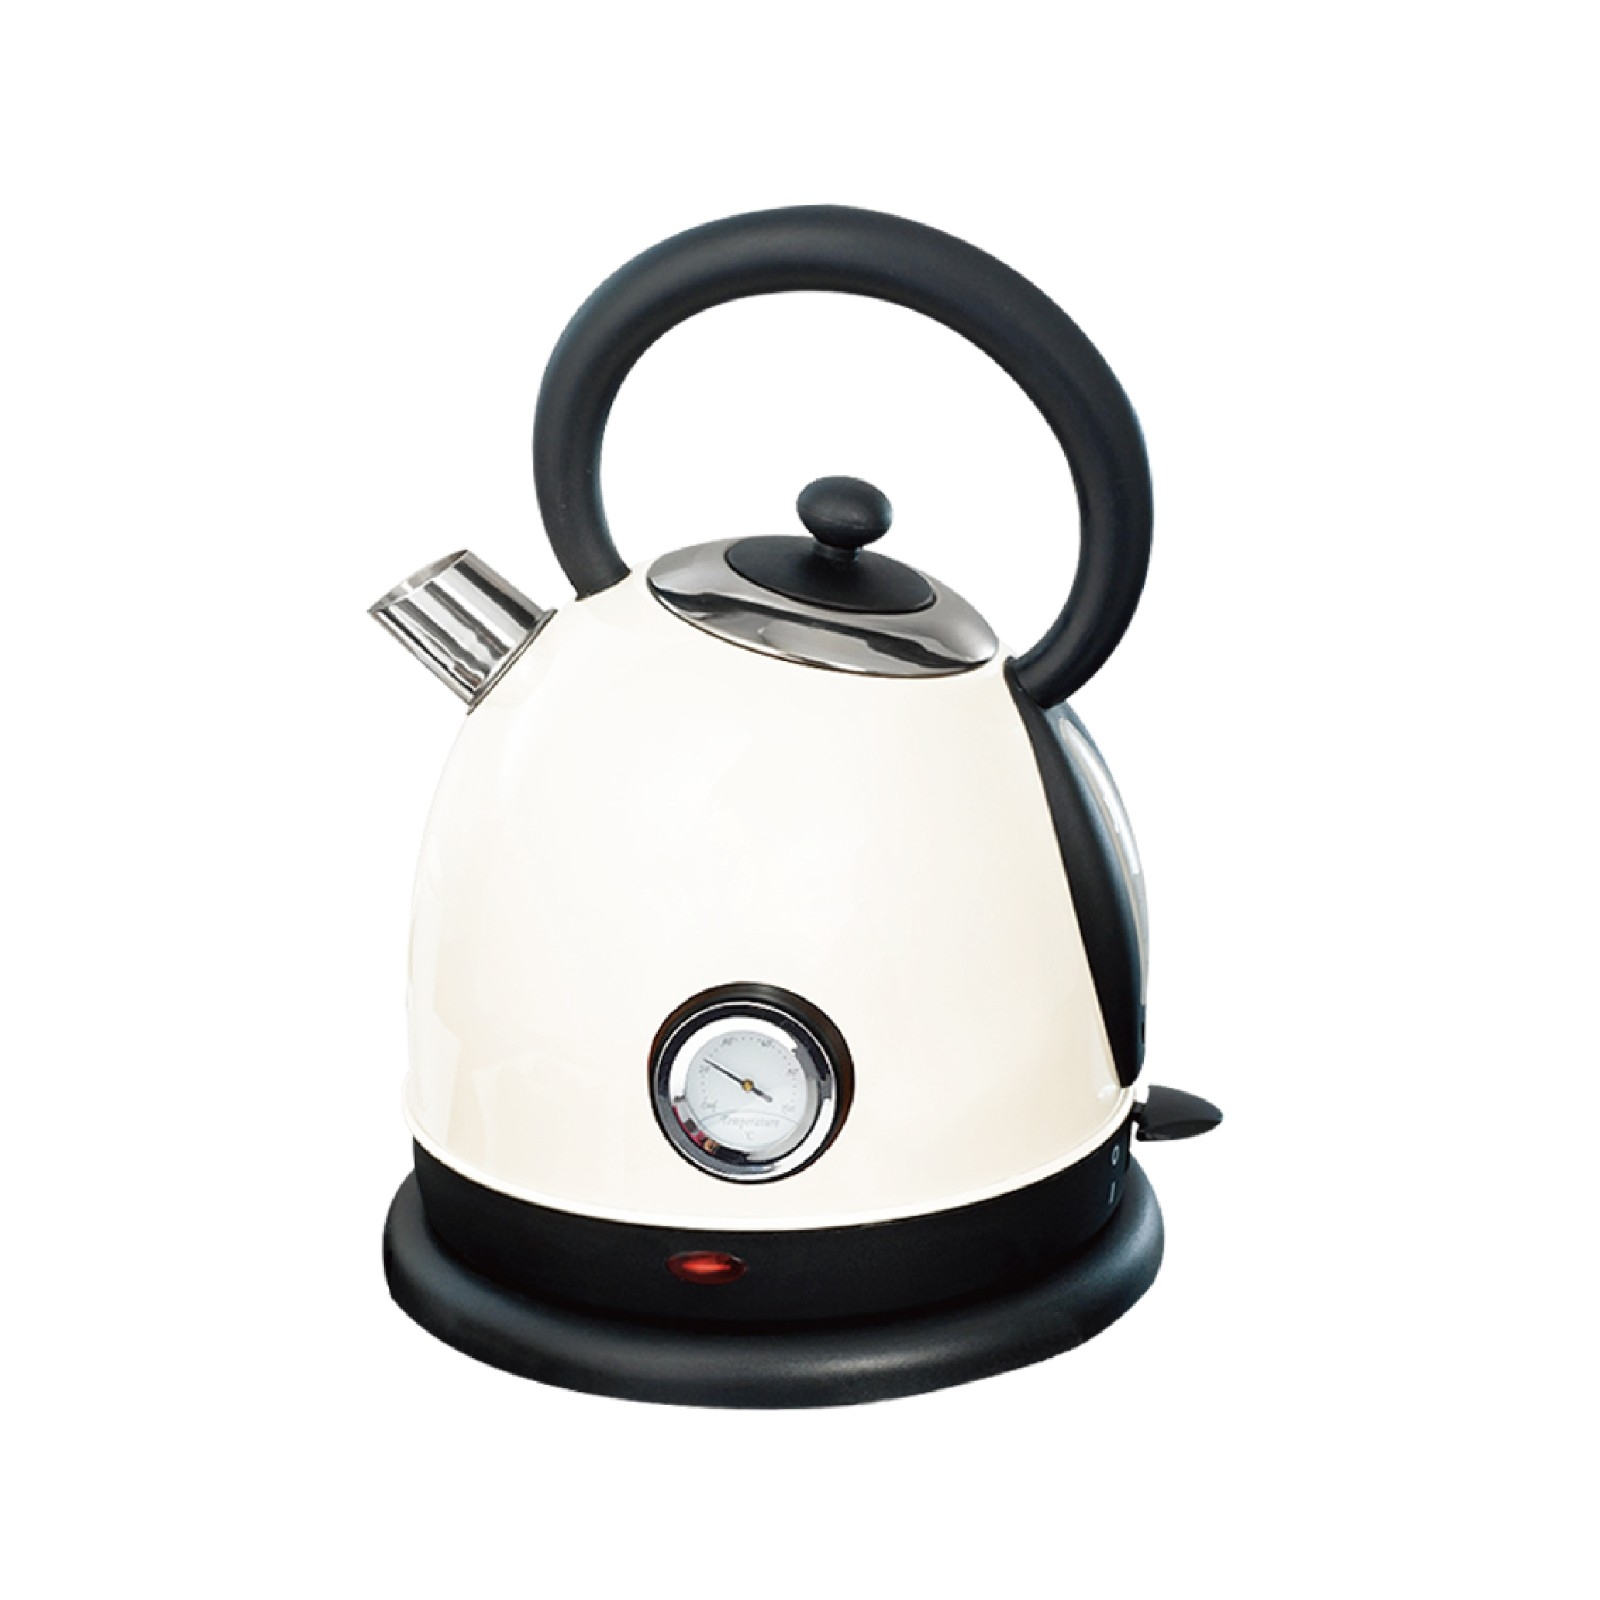 Retro Home Electric Kettle With Temperature Display